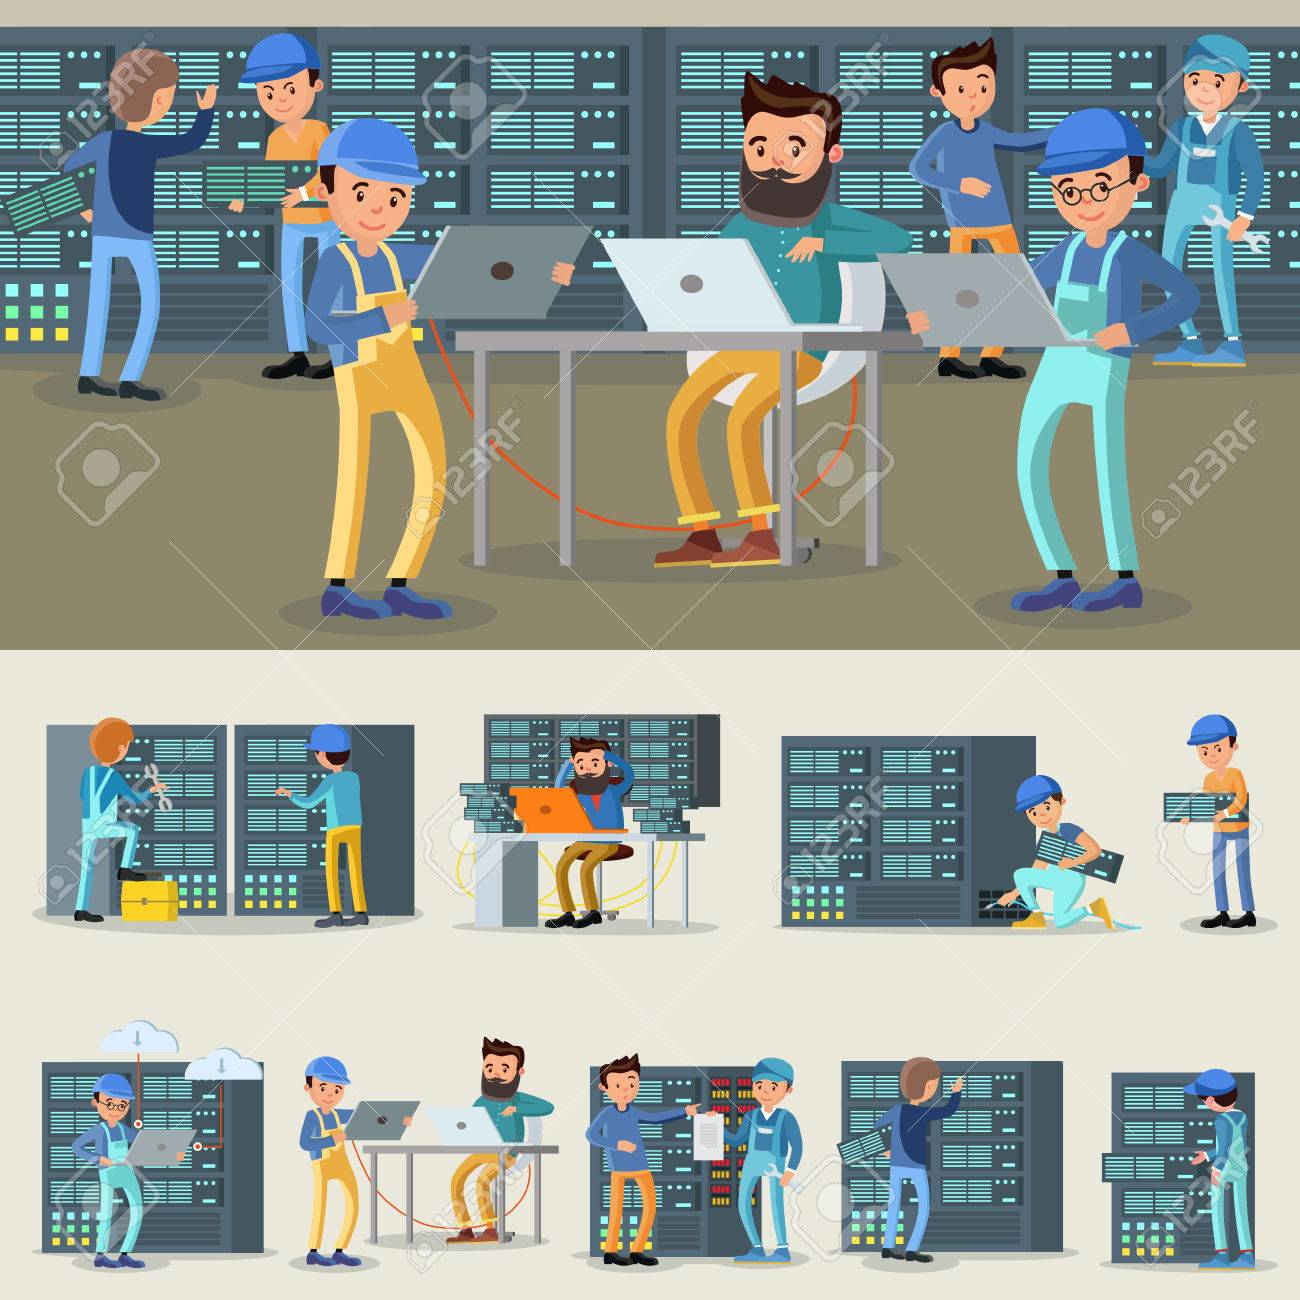 Datacenter Professional Workers Collection - 80369485